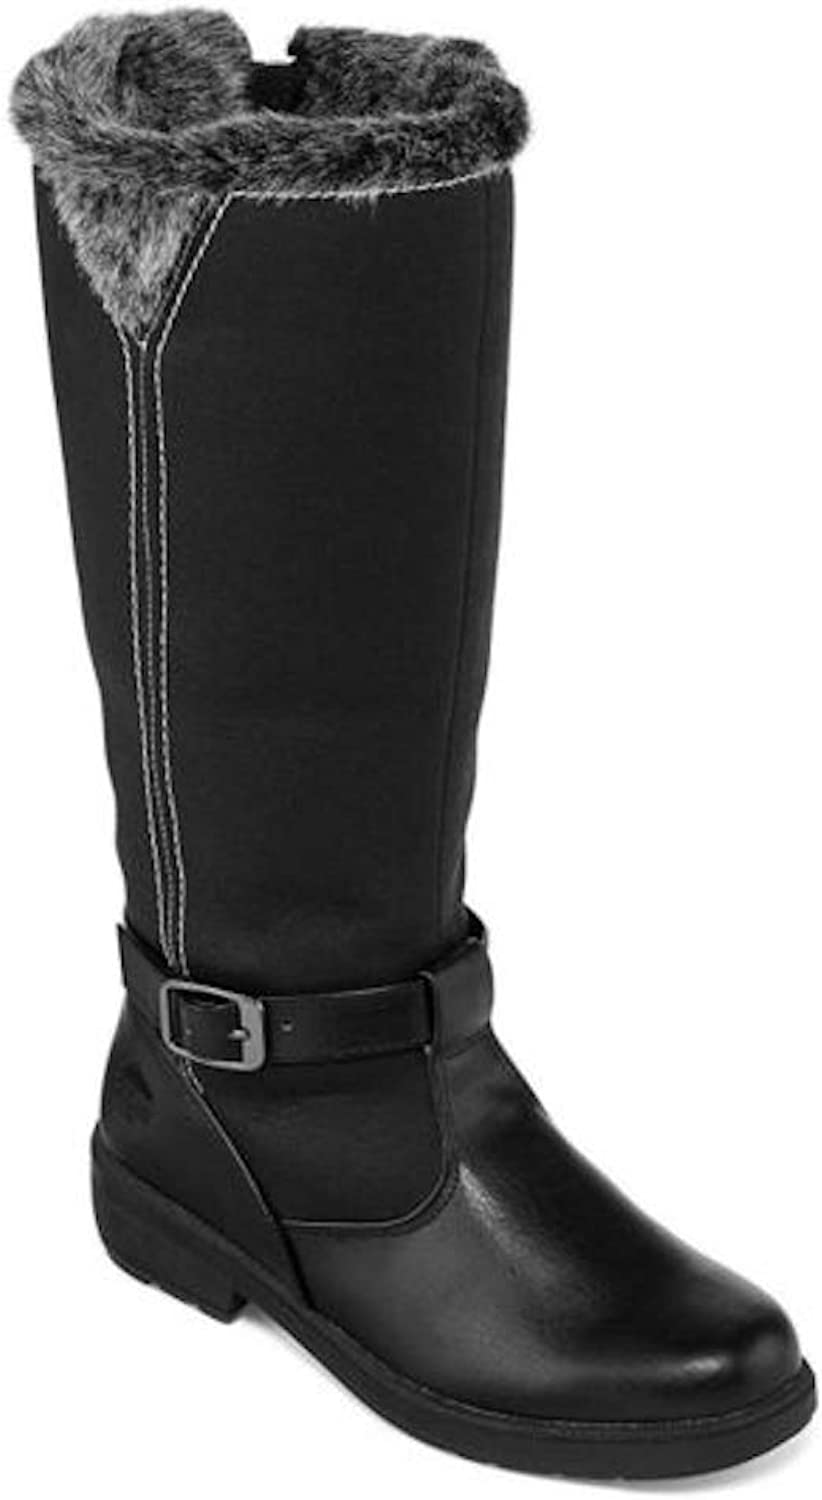 Totes Womens Shauna Faux Fur Round Toe Knee High Cold Weather Boots